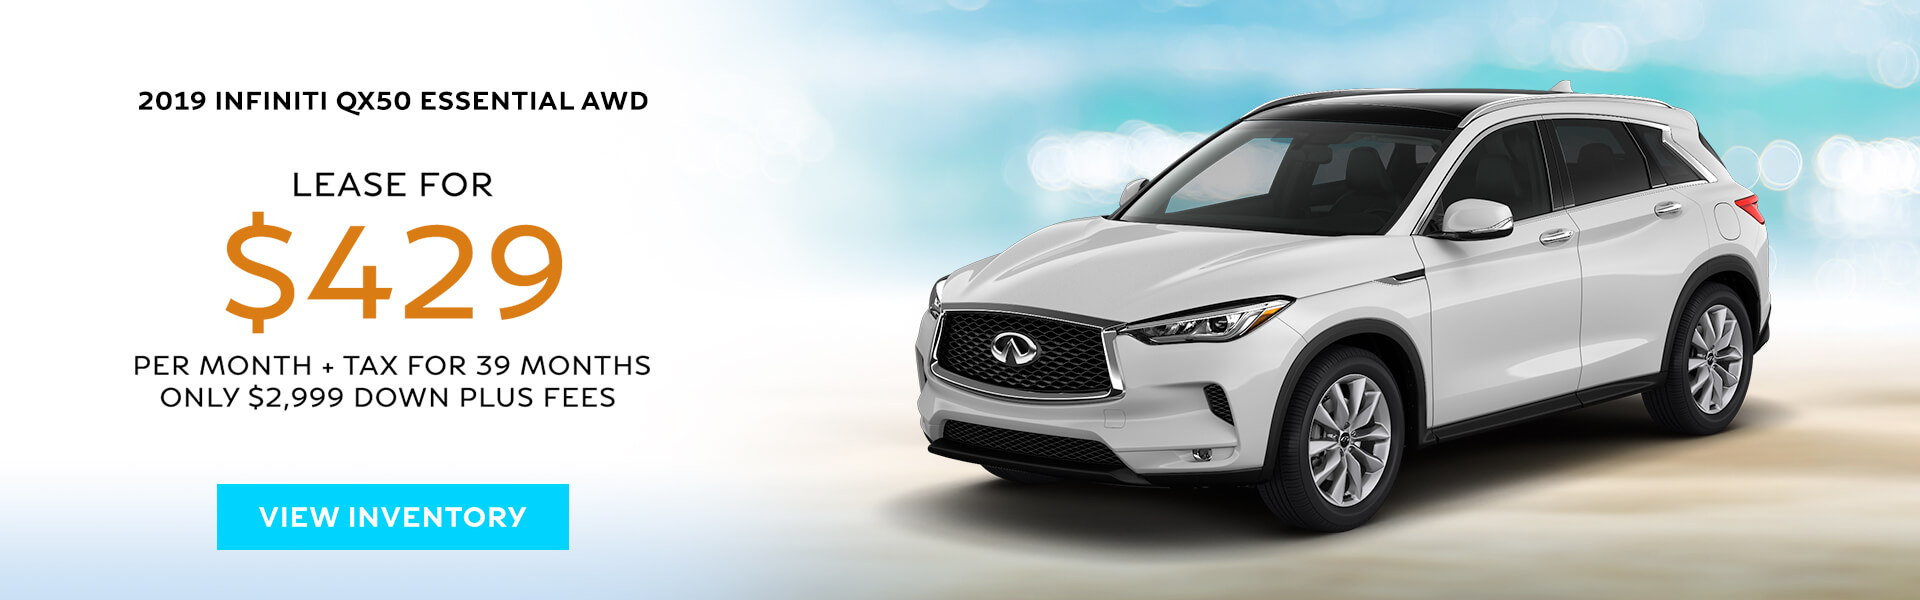 QX50 ESSENTIAL - Lease for $429